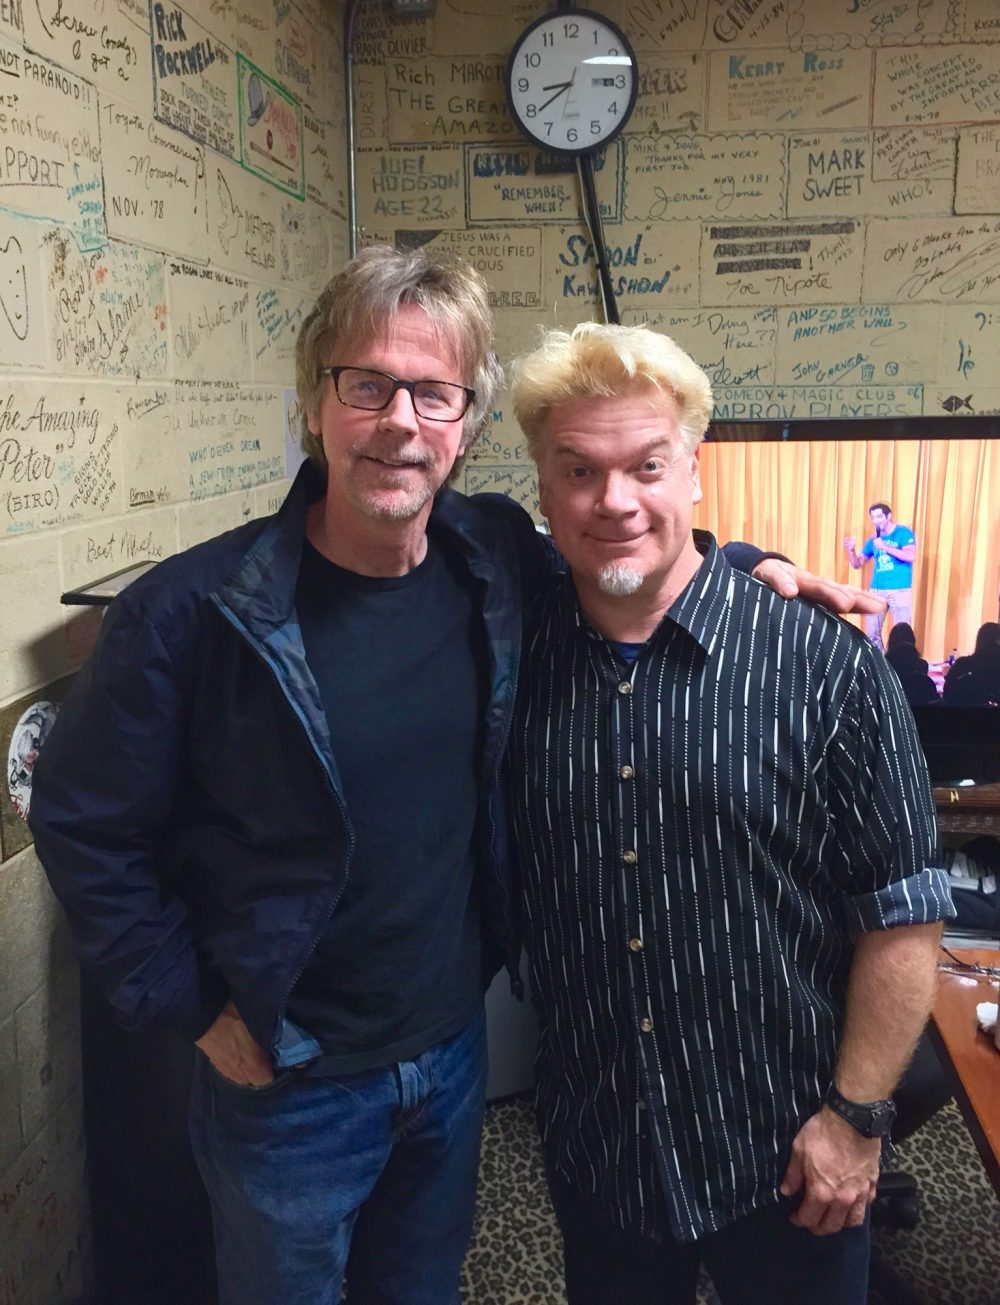 Chipper Appears With SNL's Dana Carvey for Two Shows!